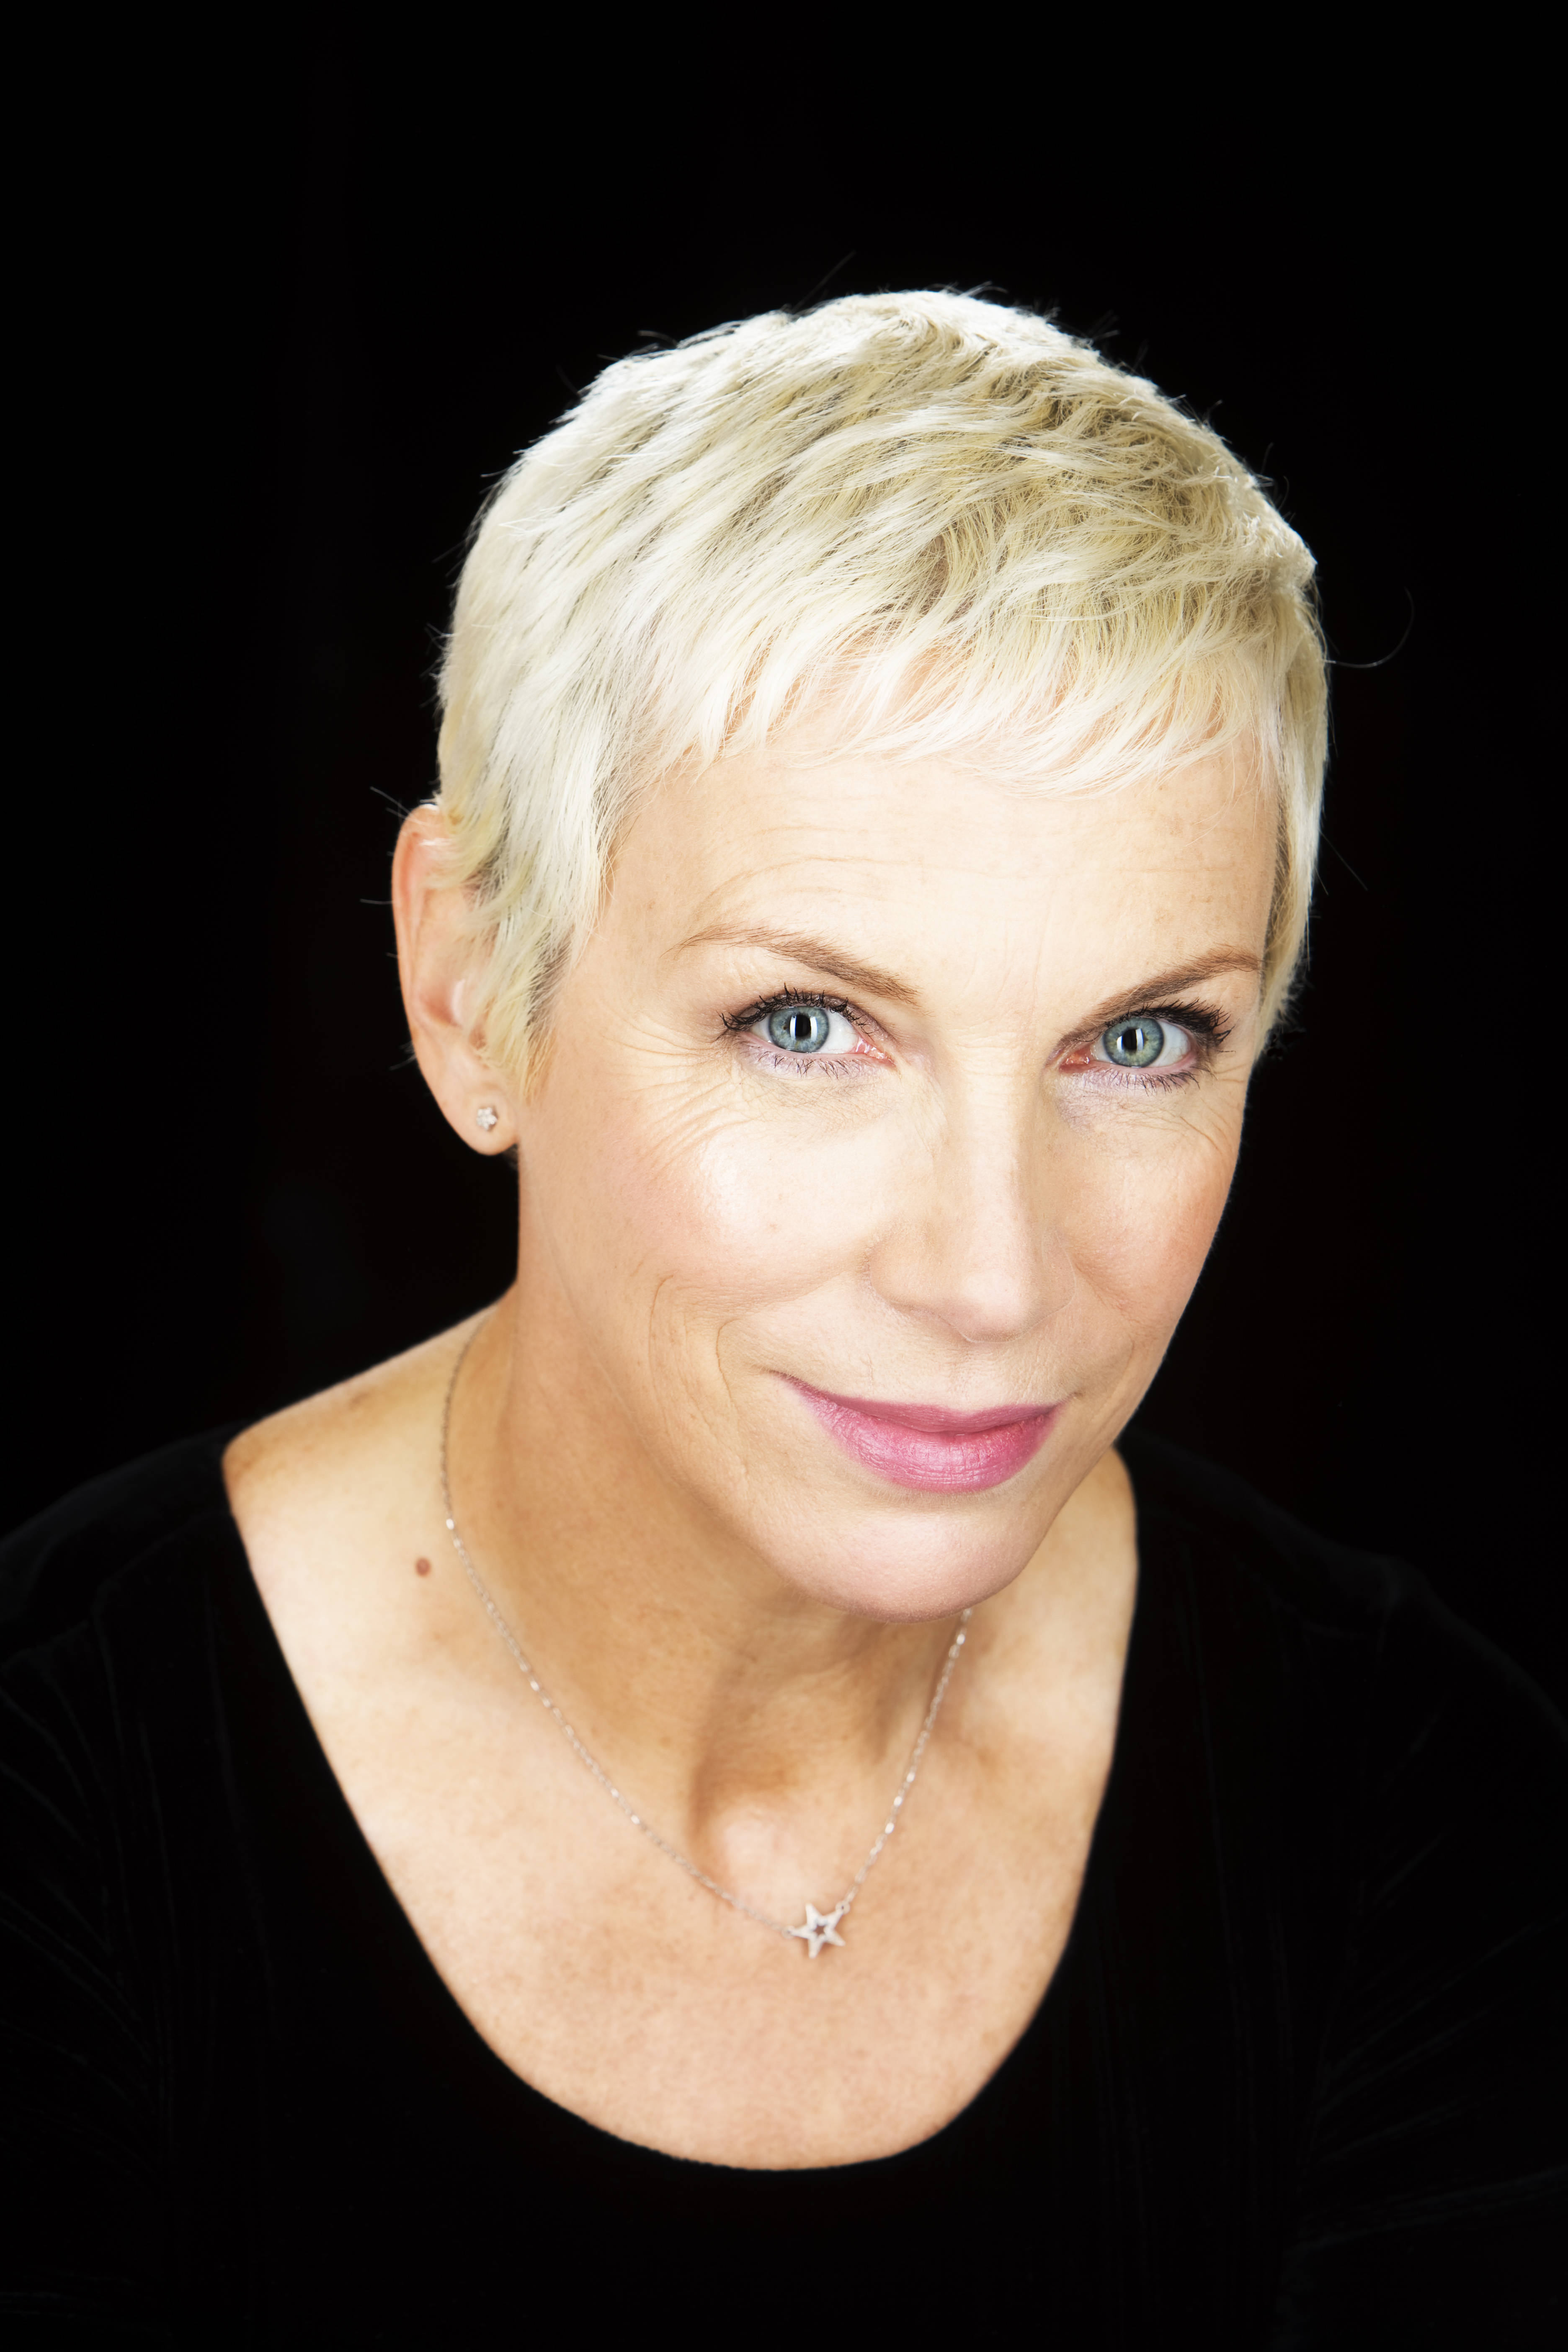 Annie Lennox photo, pics, wallpaper - photo #